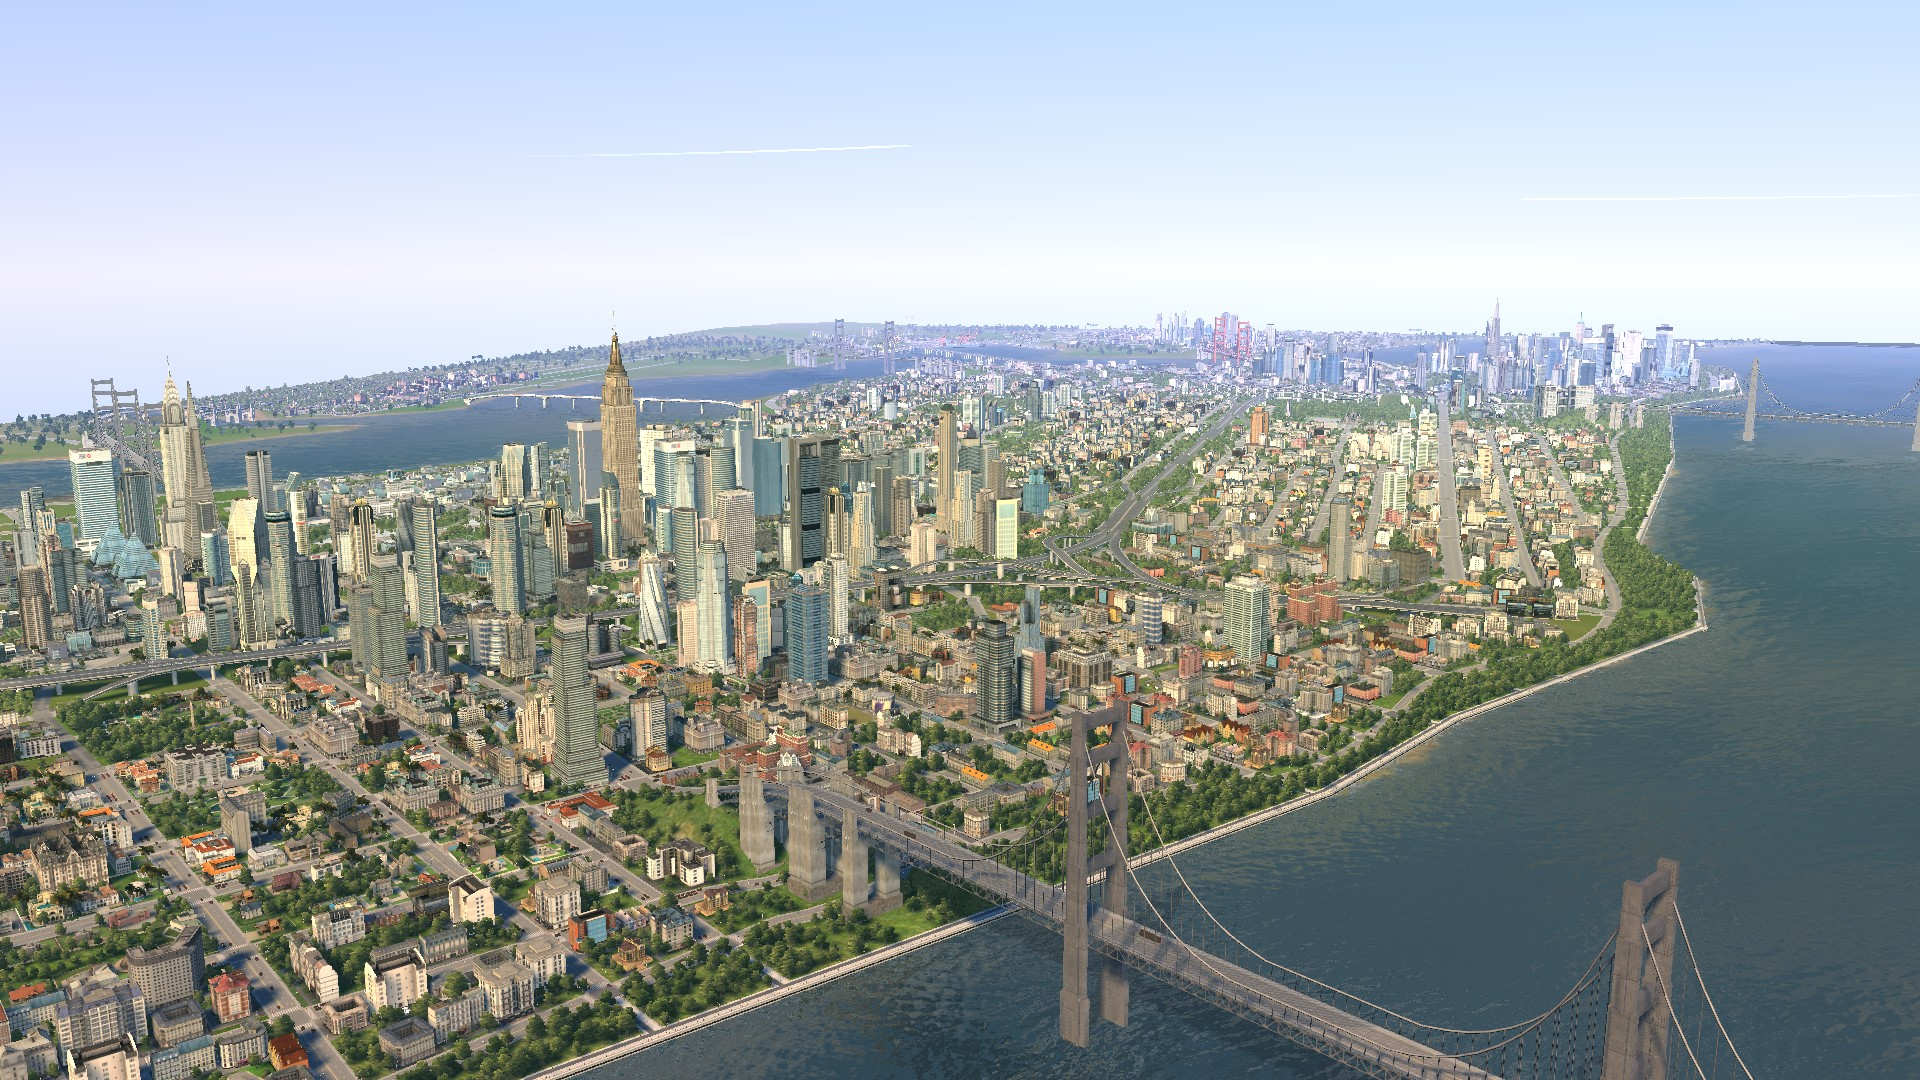 cxl_screenshot_liberty city_11.jpg